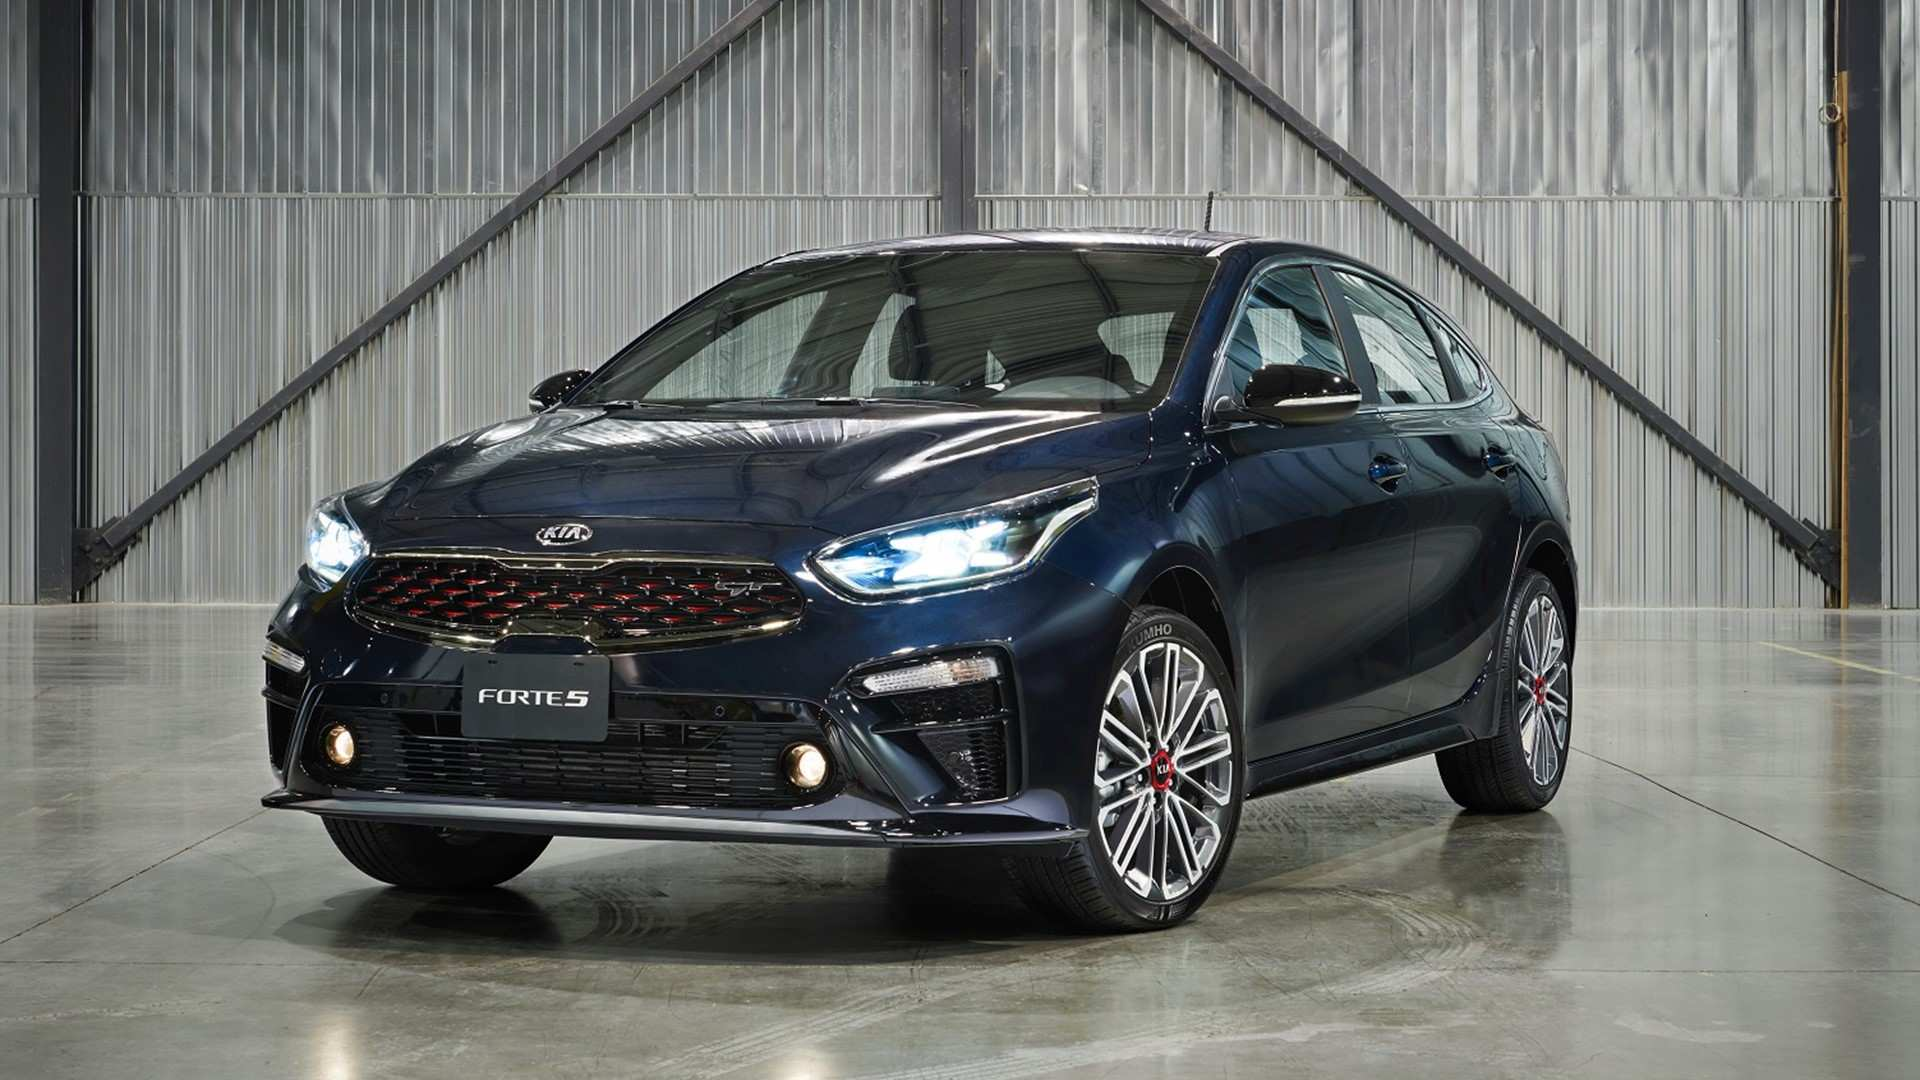 35 All New 2020 Kia Forte Exterior